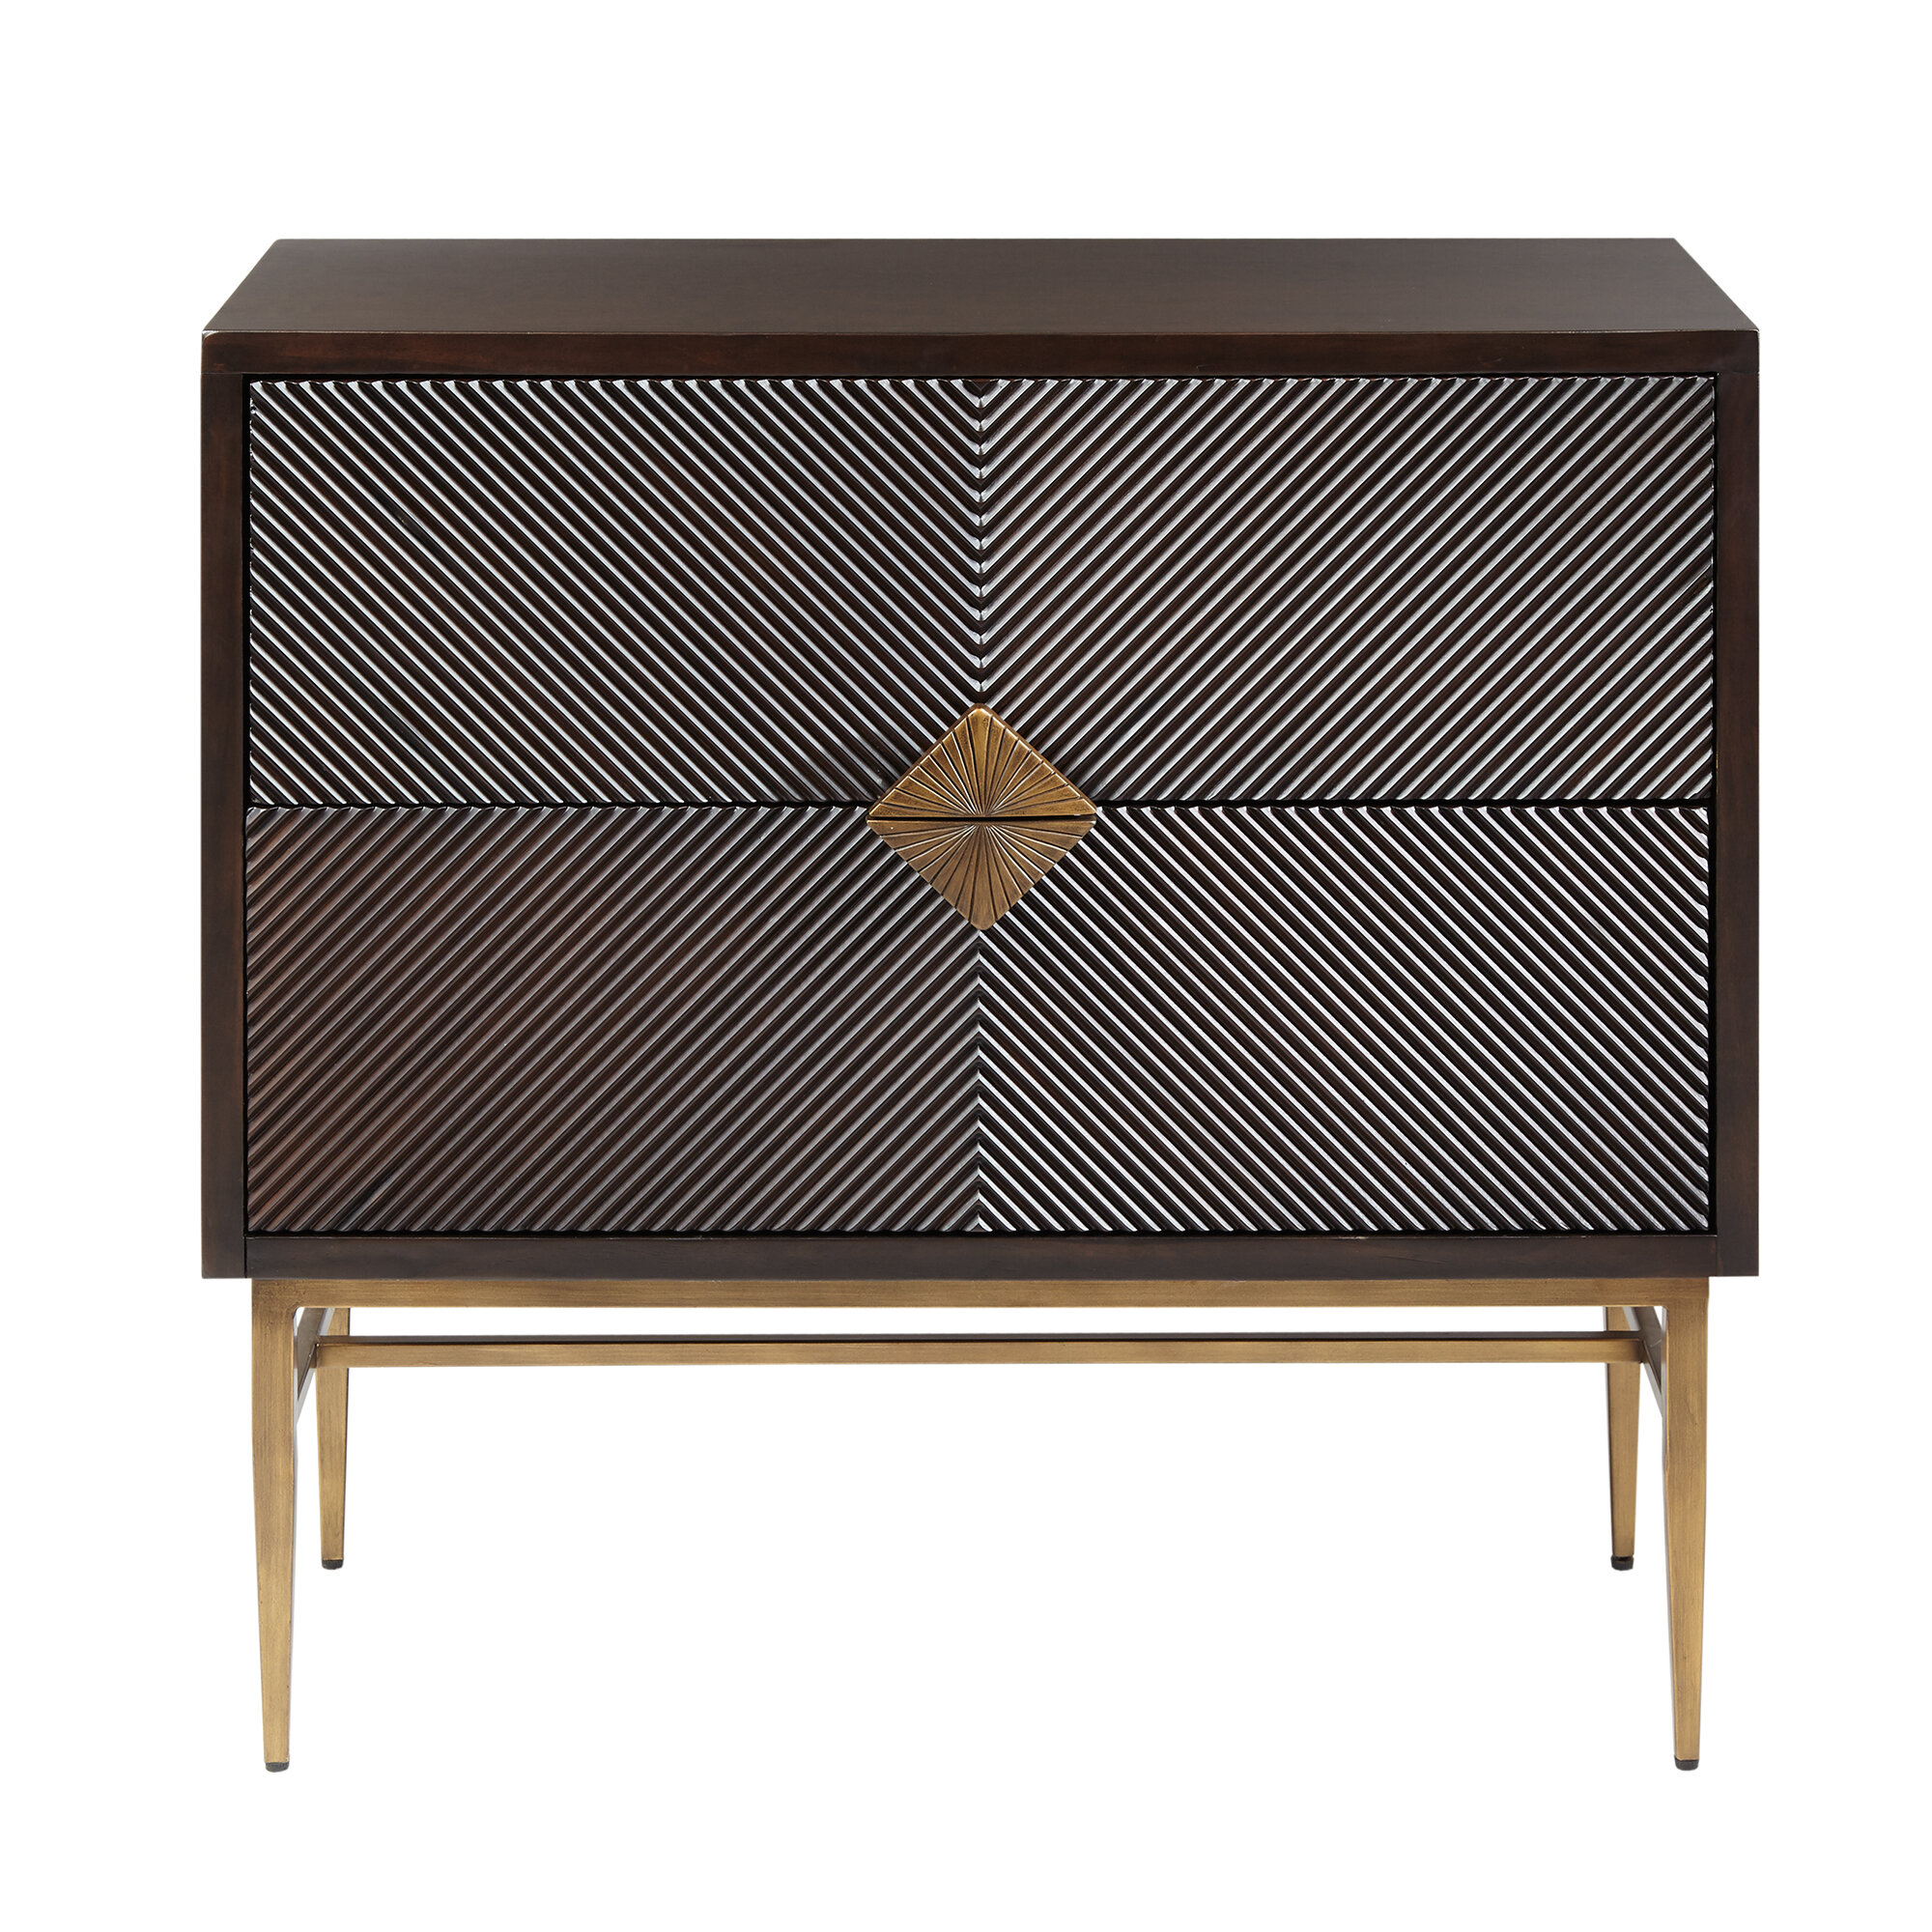 Langley Street Tobias 2 Drawer Accent Chest & Reviews | Wayfair